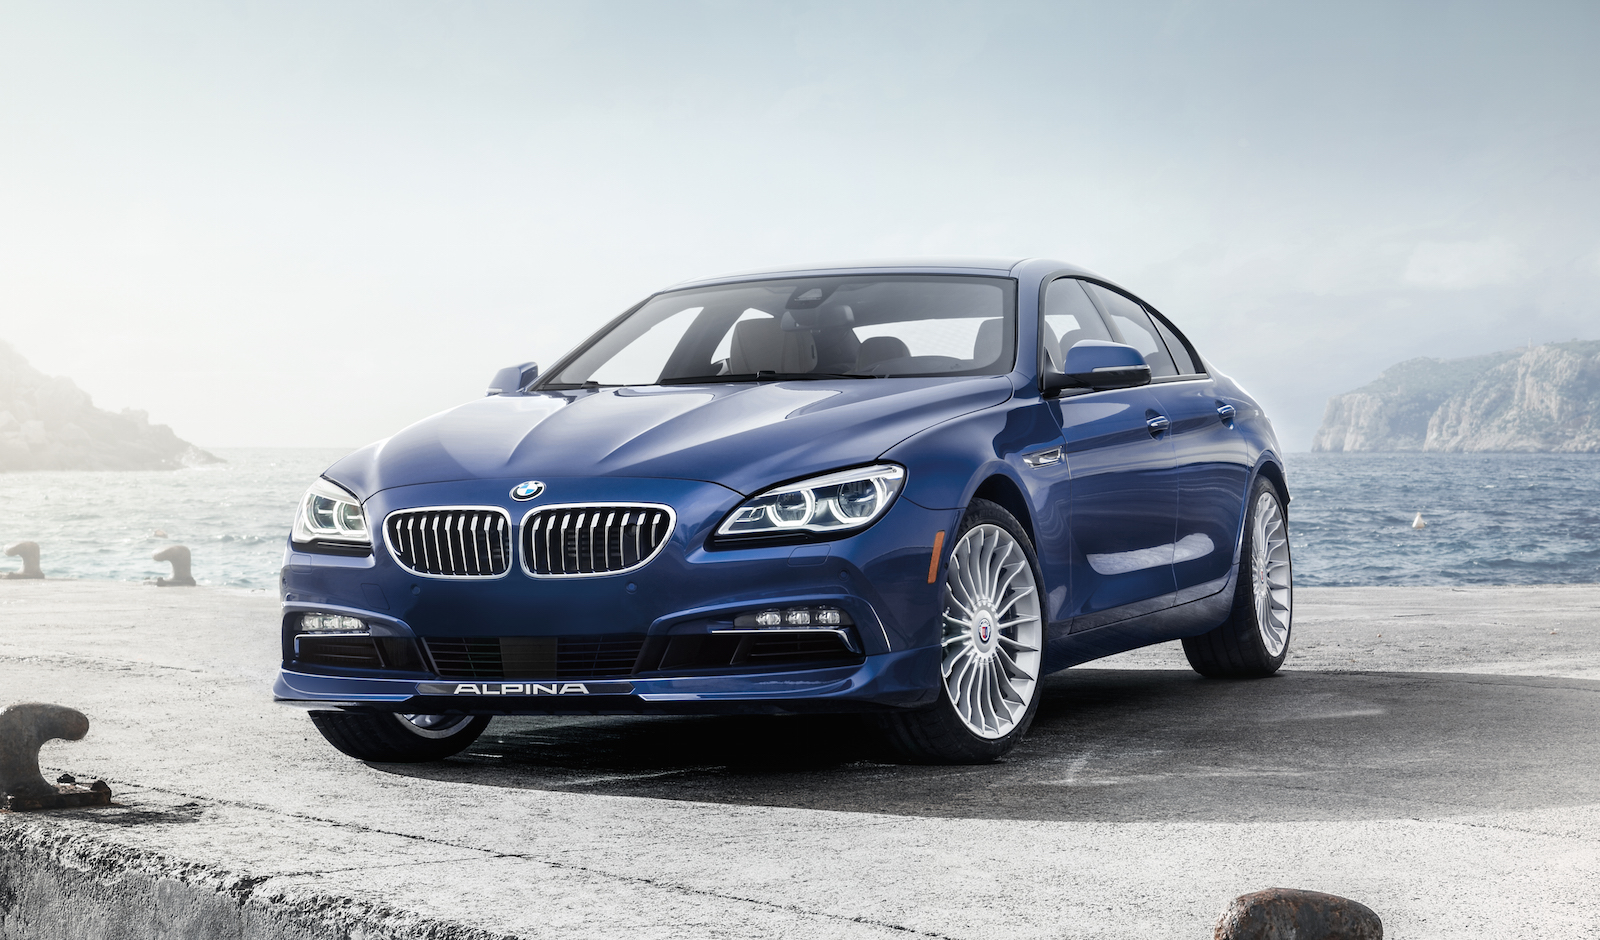 Alpina B6 Photo: motorauthority